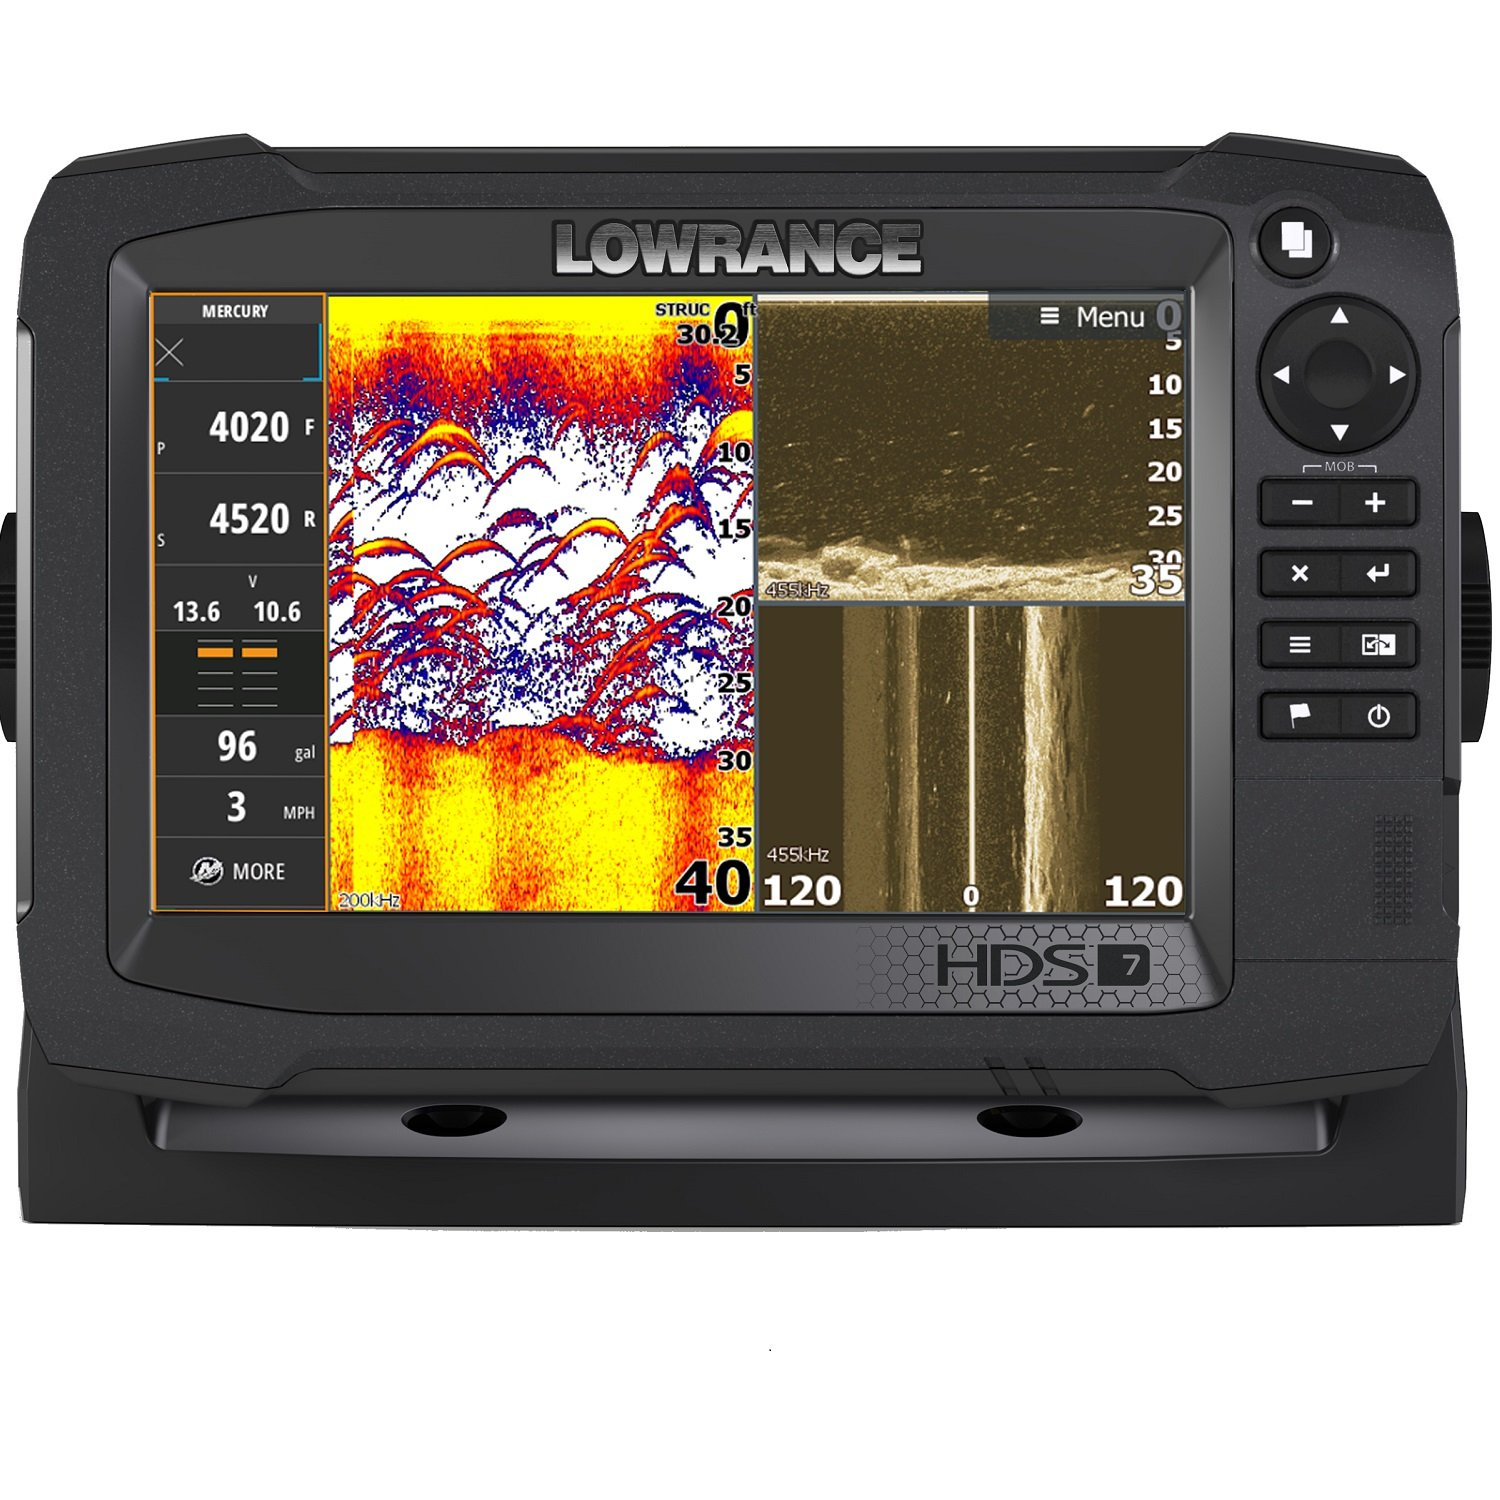 Lowrance Navico HDS-7 Carbon Insight with Total Scan Transducer by Lowrance